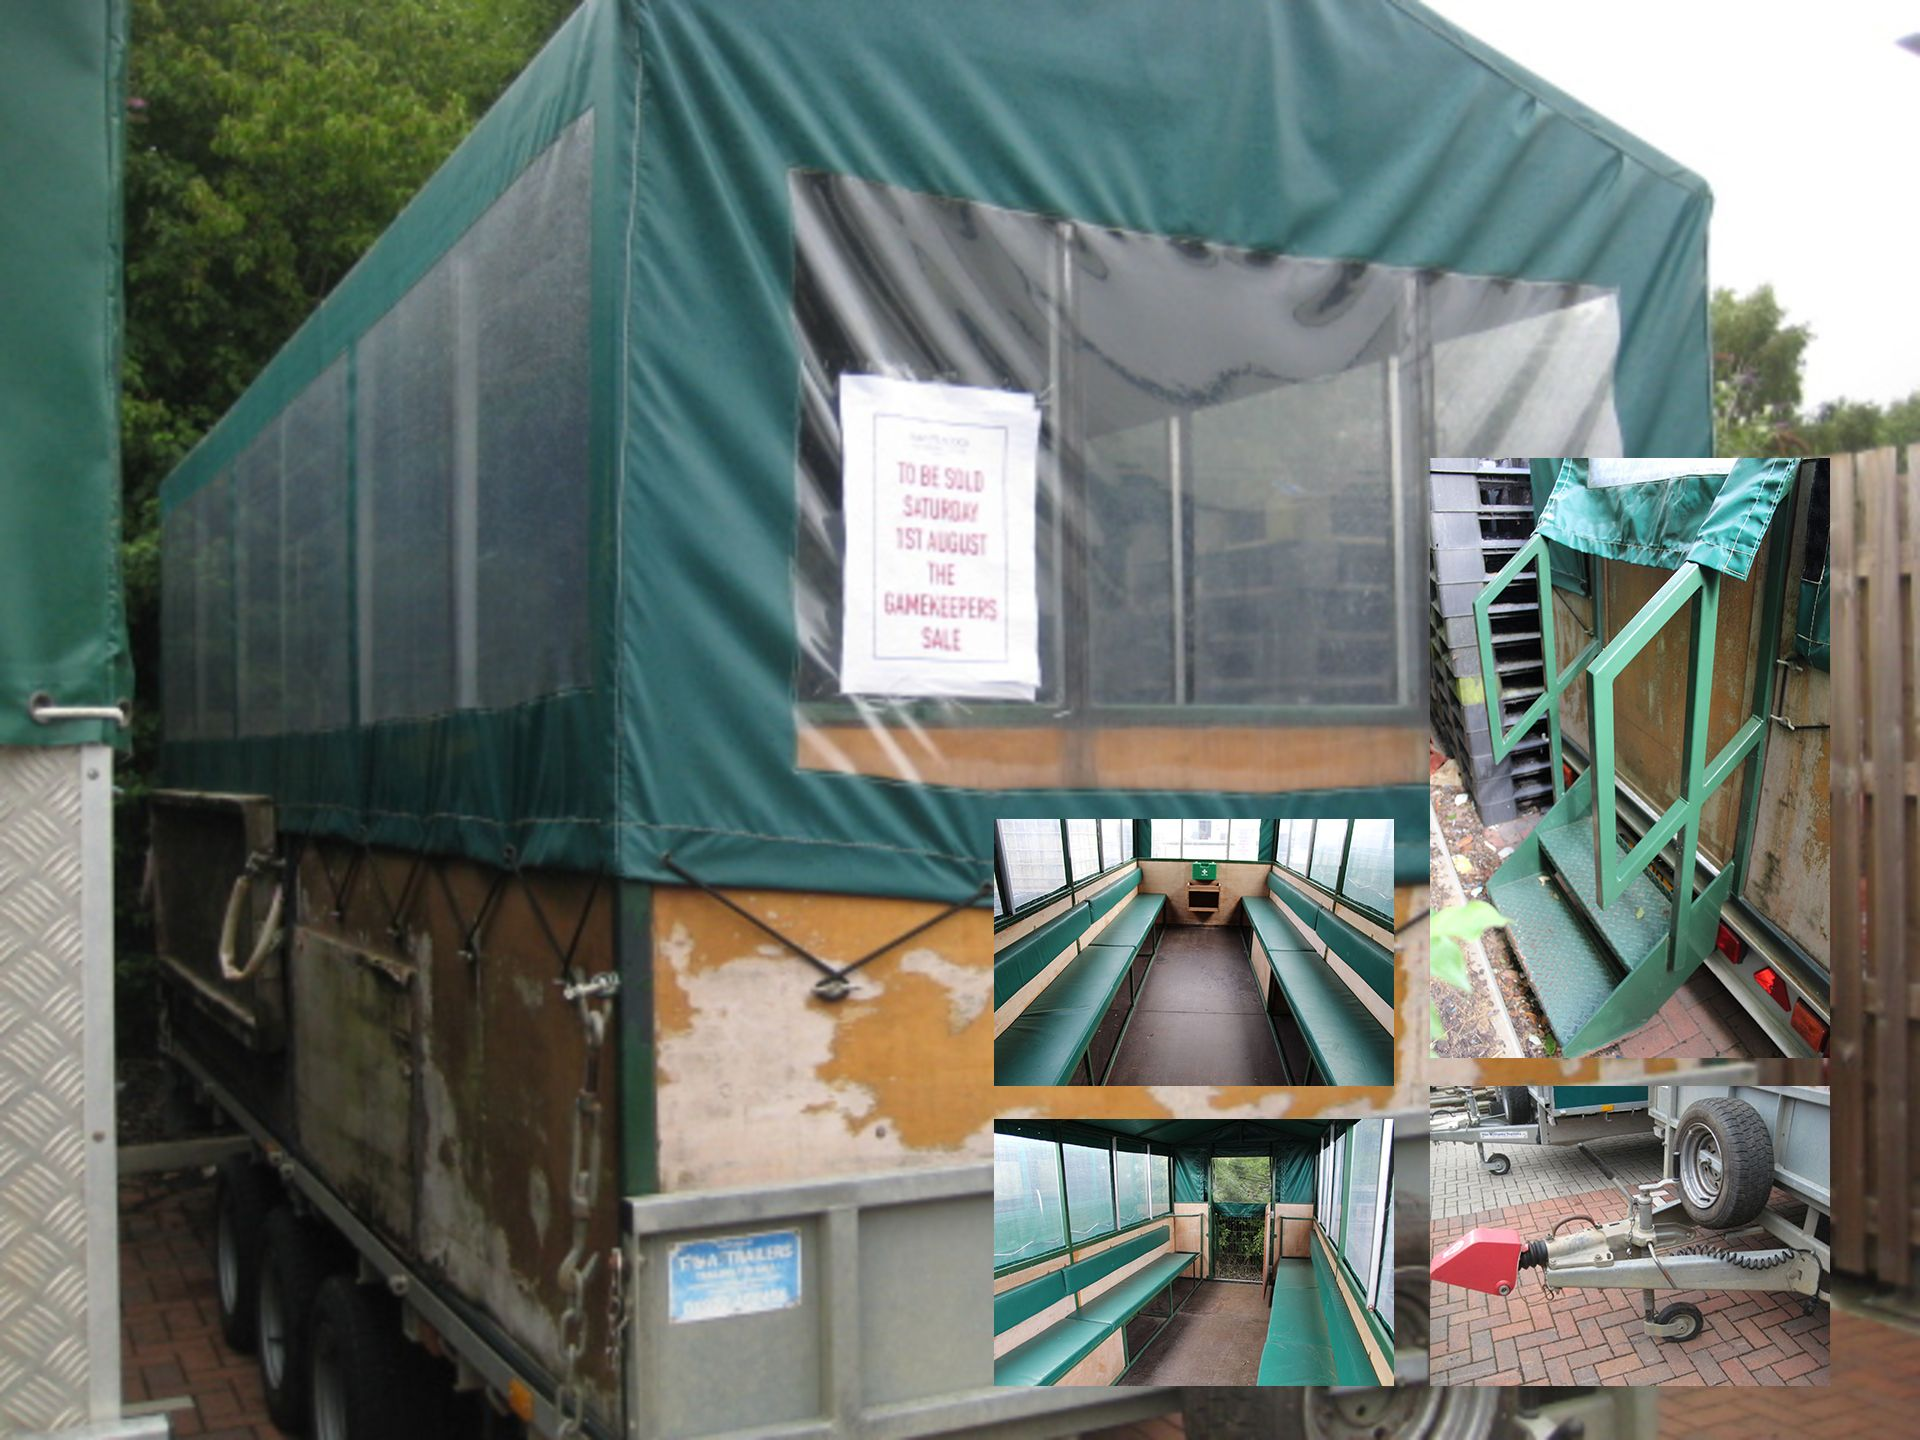 Lot 4123 - Ifor Williams LM166 tri-axle Beater's trailer, with interior bench seating, removable cover, first